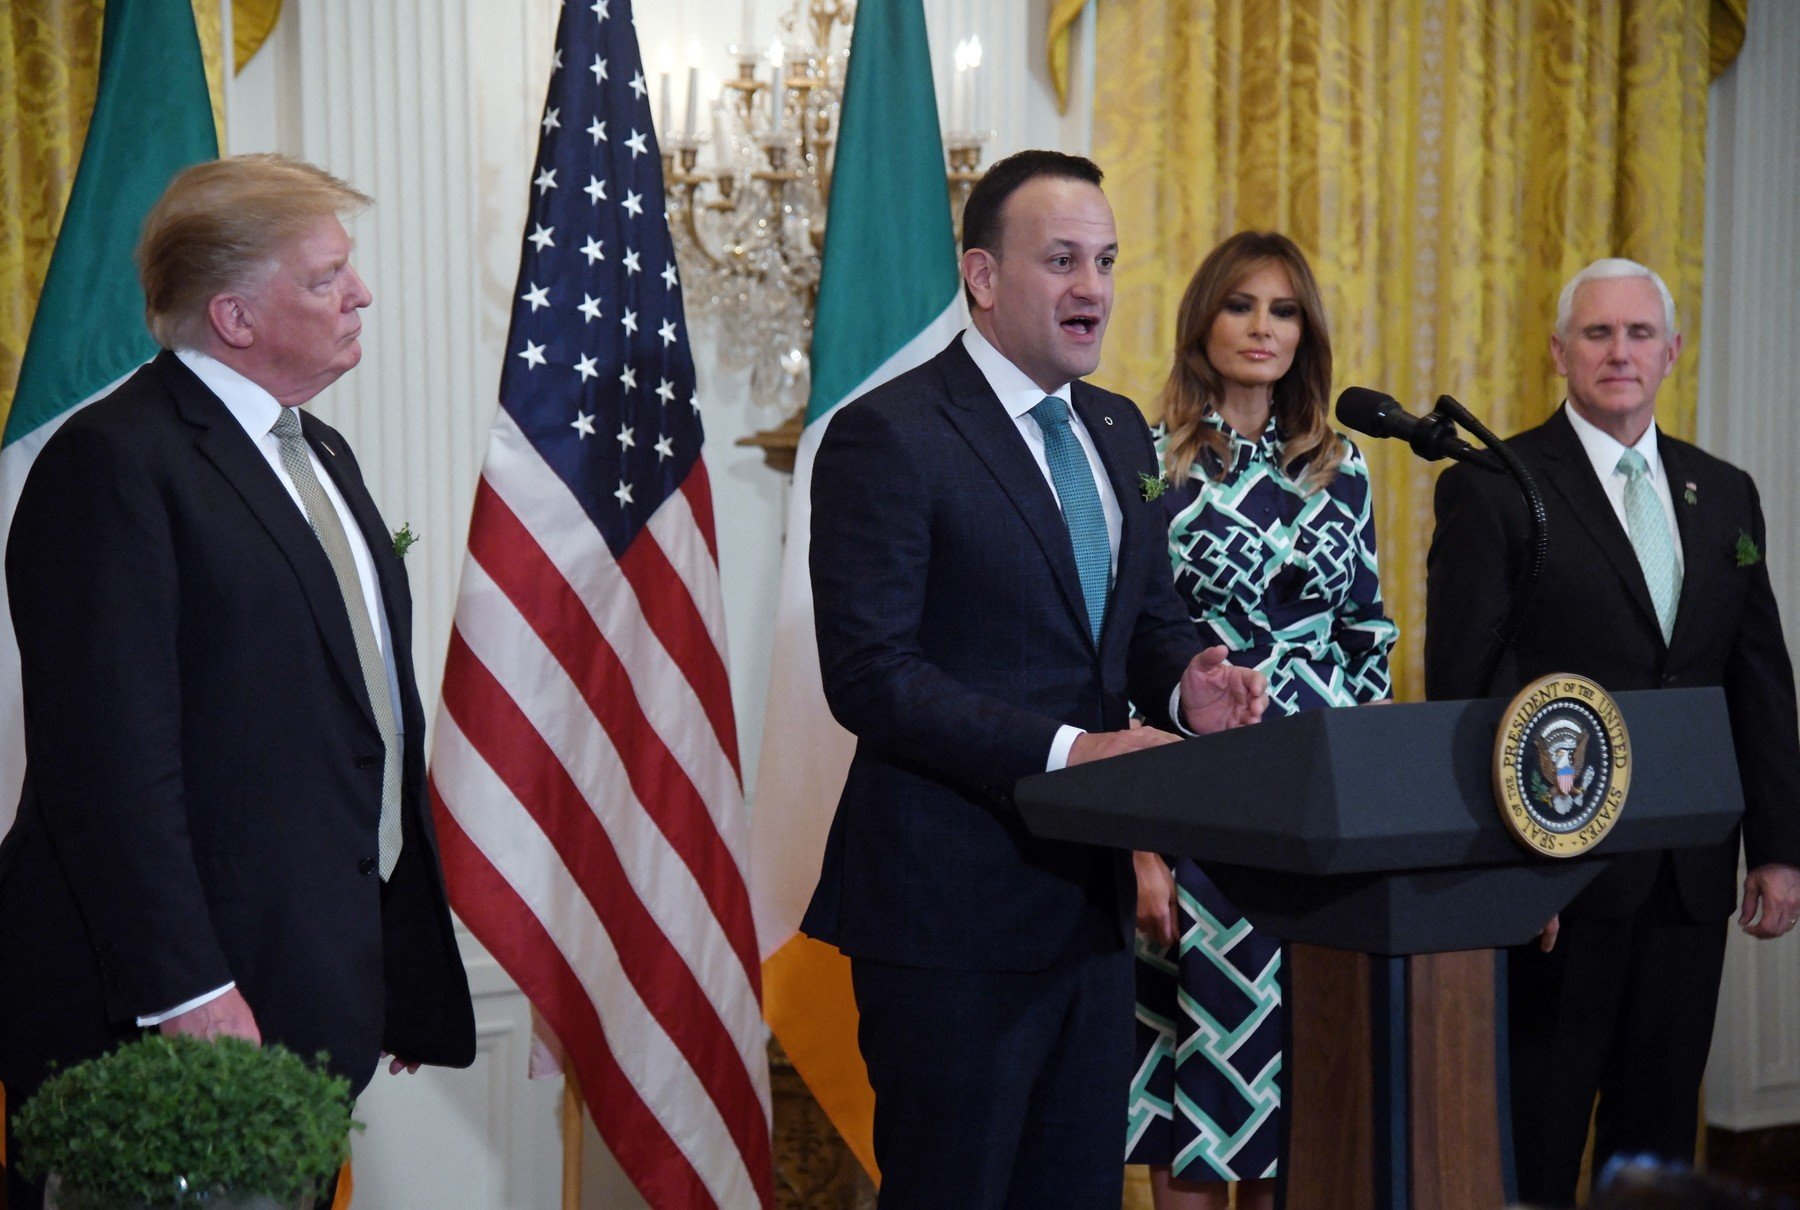 (L-R) United States President Donald J. Trump, Prime Minister Leo Varadkar of Ireland, first lady Melania Trump and U.S. Vice President Mike Pence attend the Shamrock Bowl Presentation at the White House on March 14, 2019 in Washington, D.C., Image: 419542019, License: Rights-managed, Restrictions: , Model Release: no, Credit line: Profimedia, Abaca Press